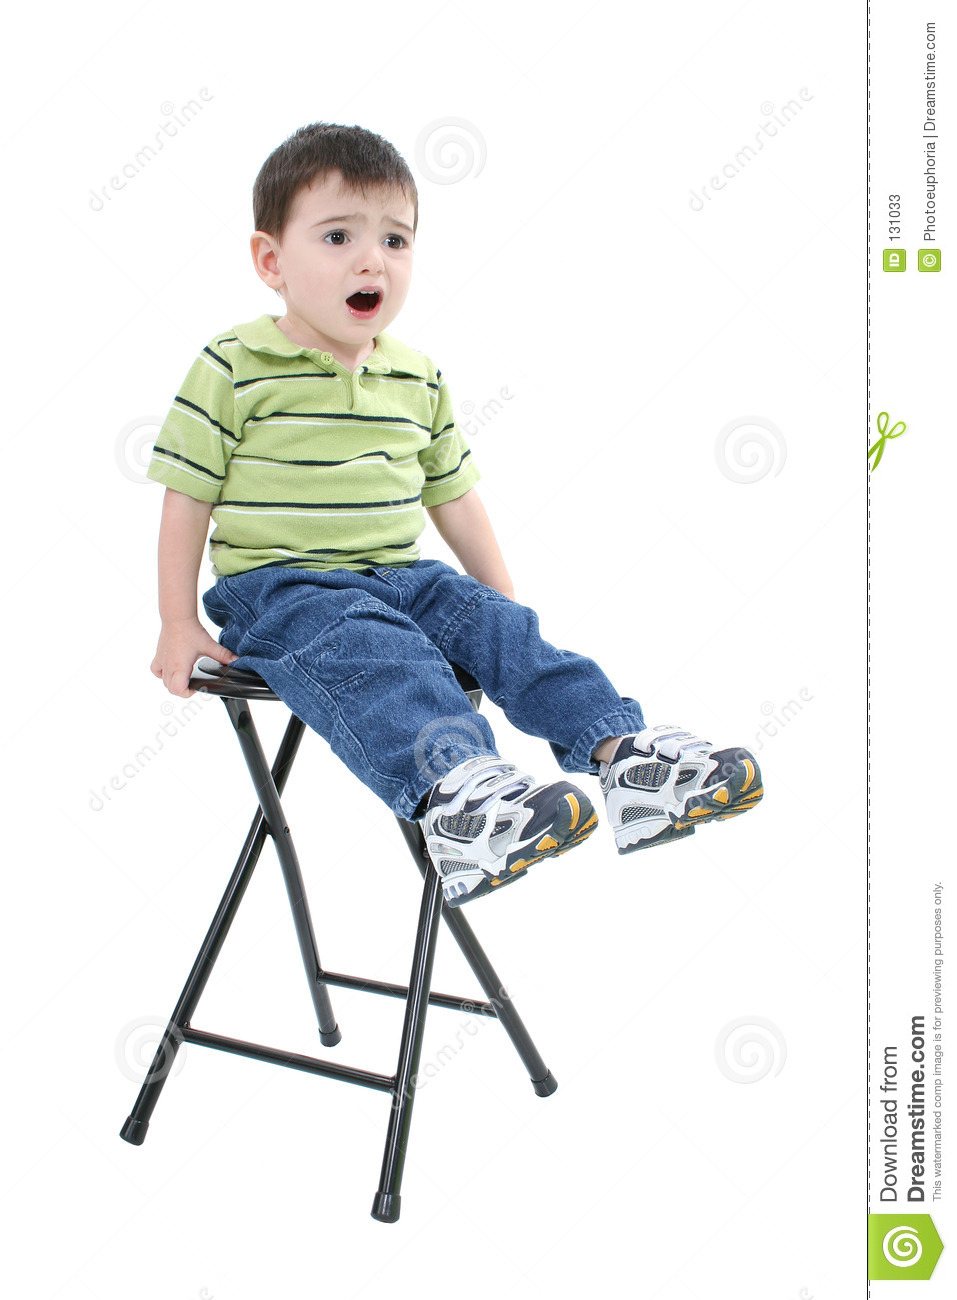 Adorable Boy Sitting On Stool With Upset Expression Stock Photos Image 131033